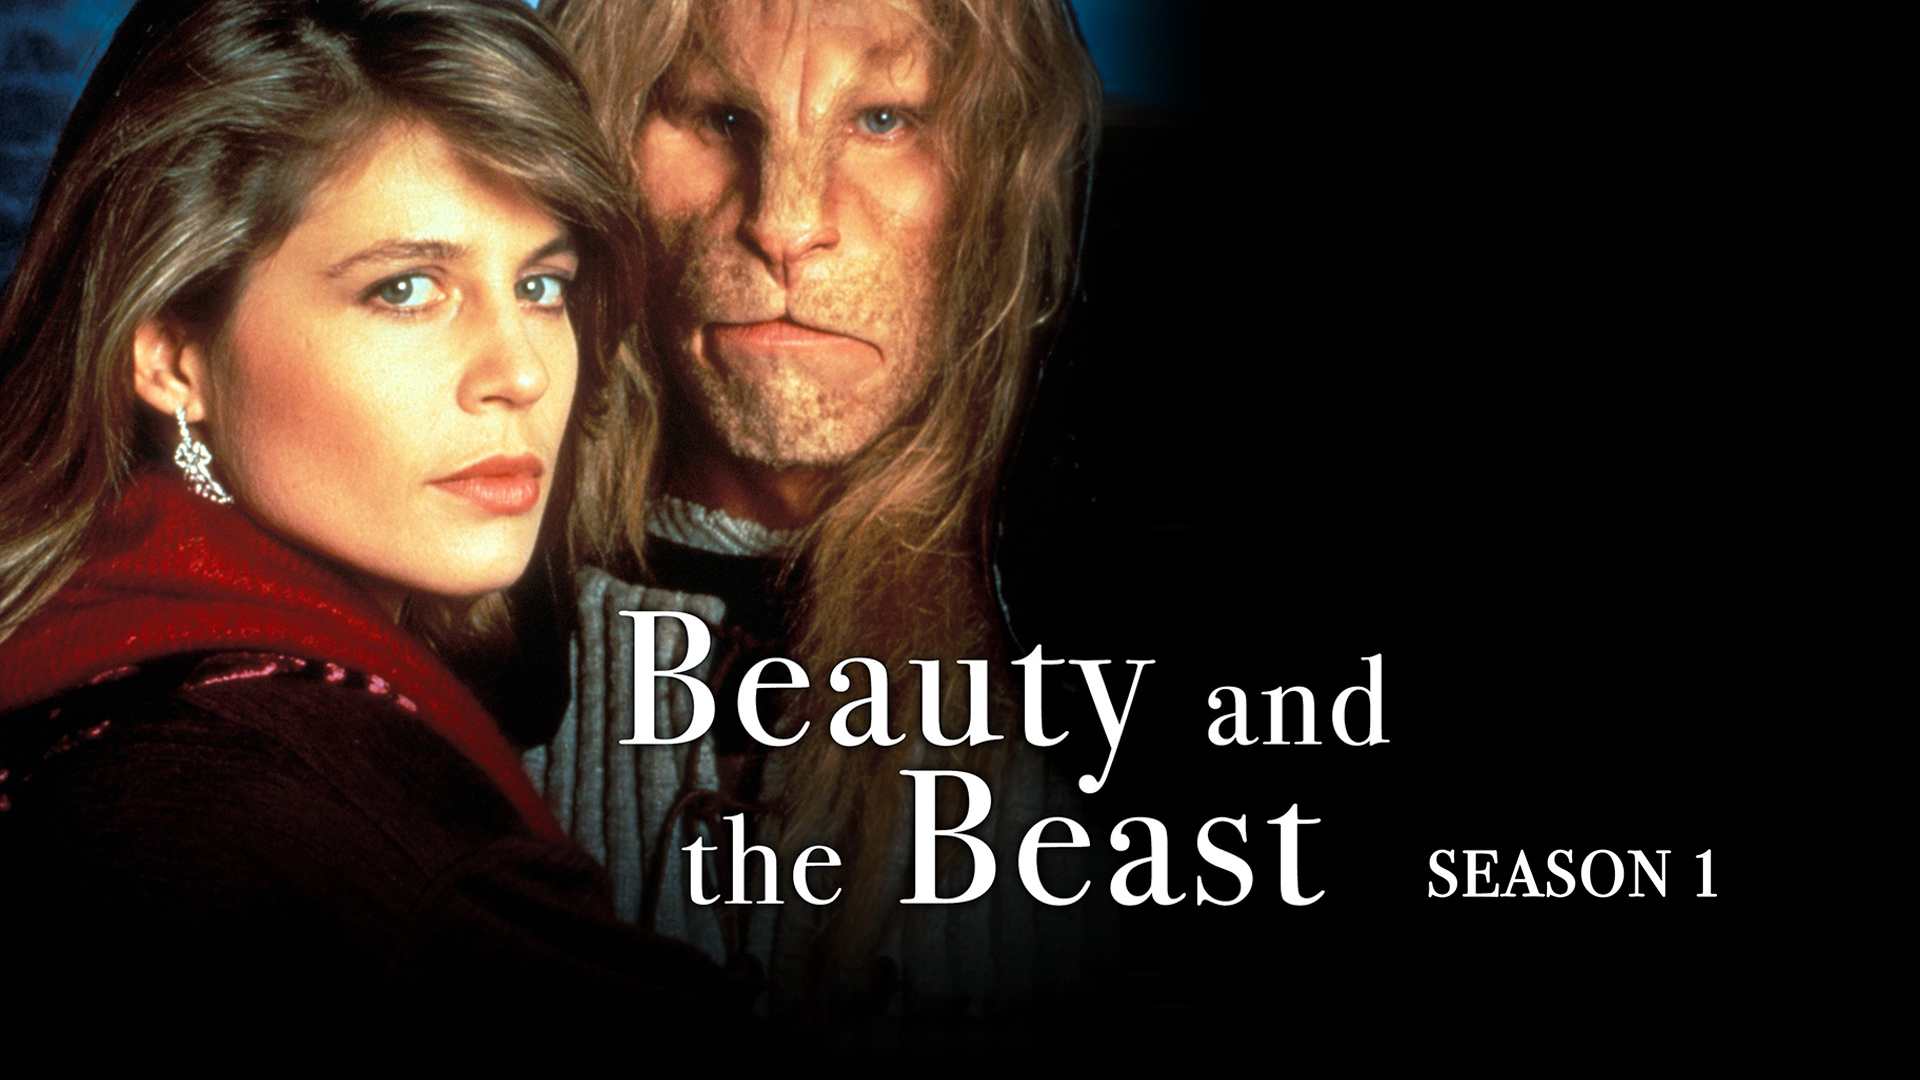 Beauty and the Beast Season 1